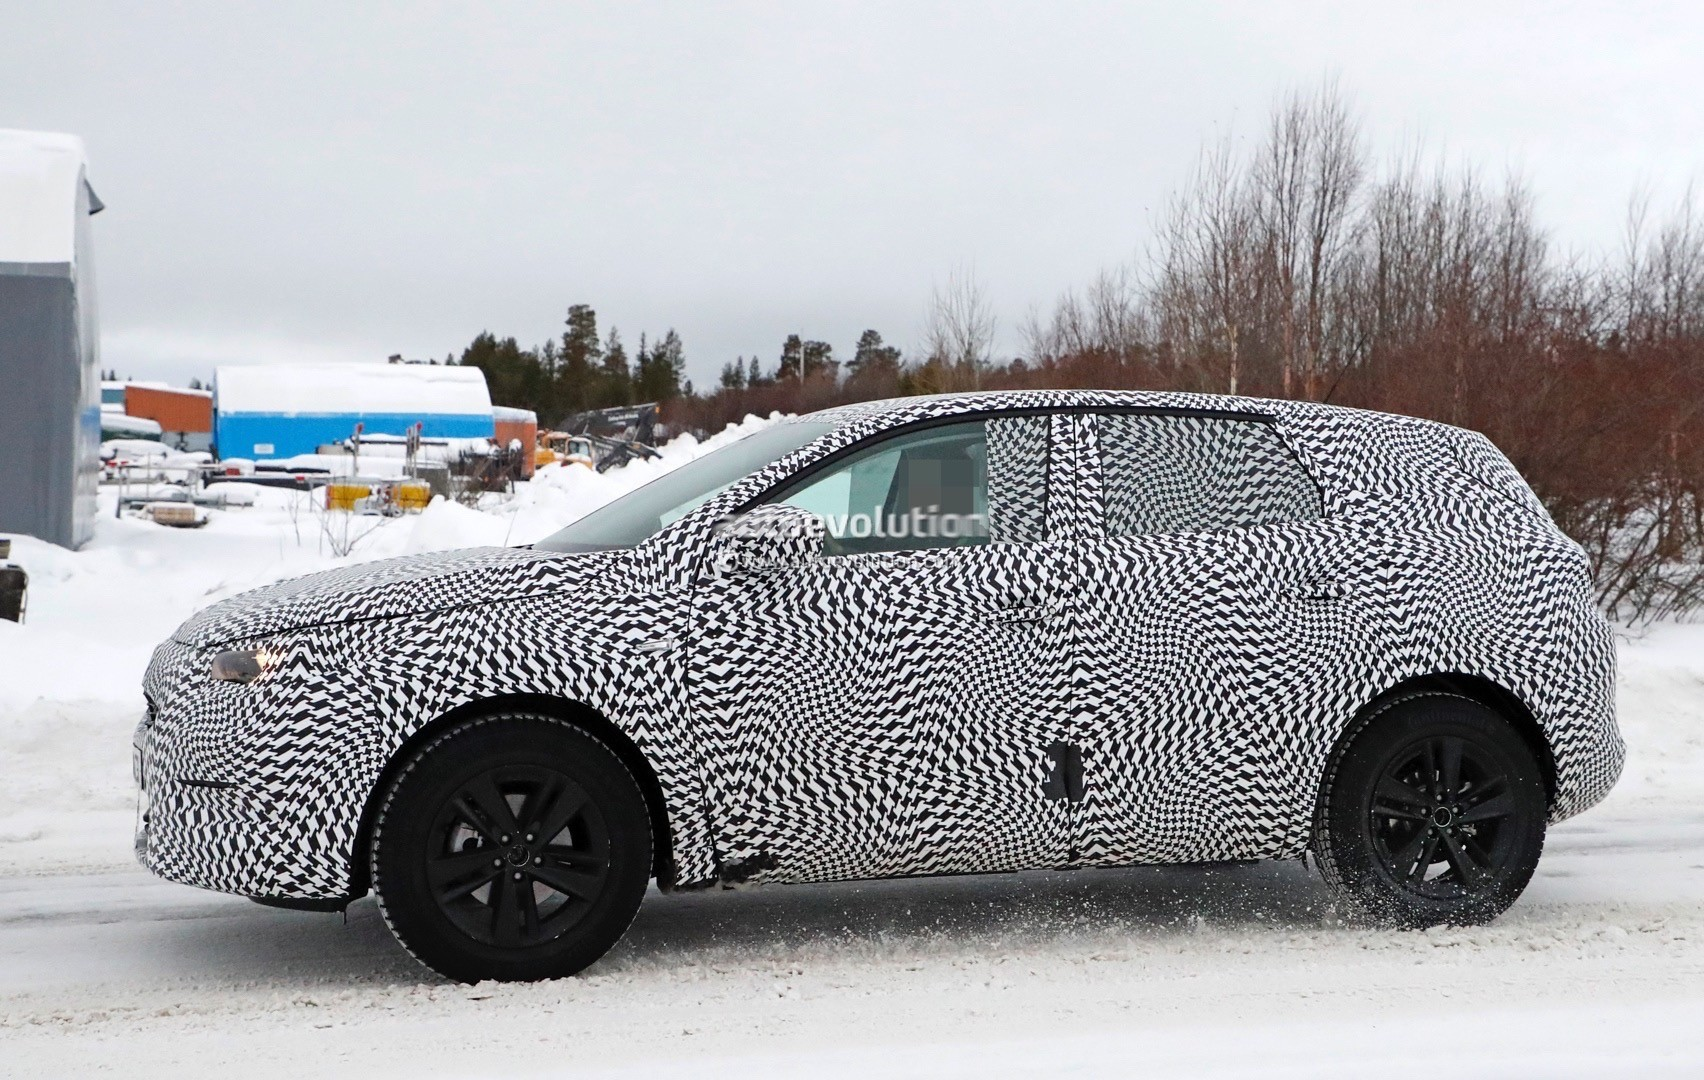 2017 Opel Grandland X Caught Cold Weather Testing